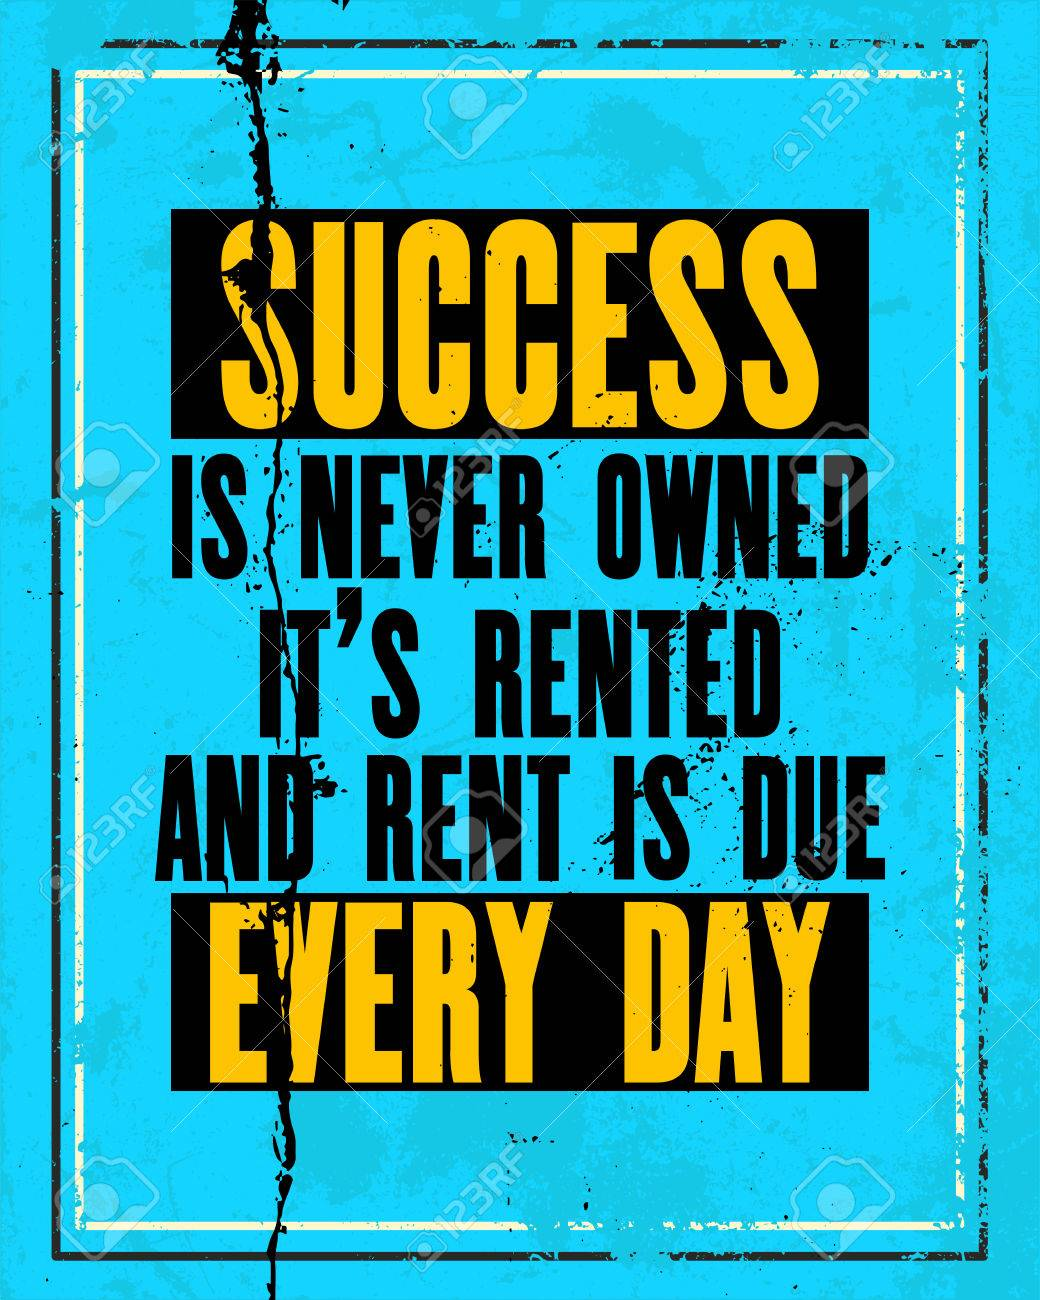 26ba32db1bb4 Inspiring motivation quote with text Success Is Never Owned It Is Rented  And Rent Is Due